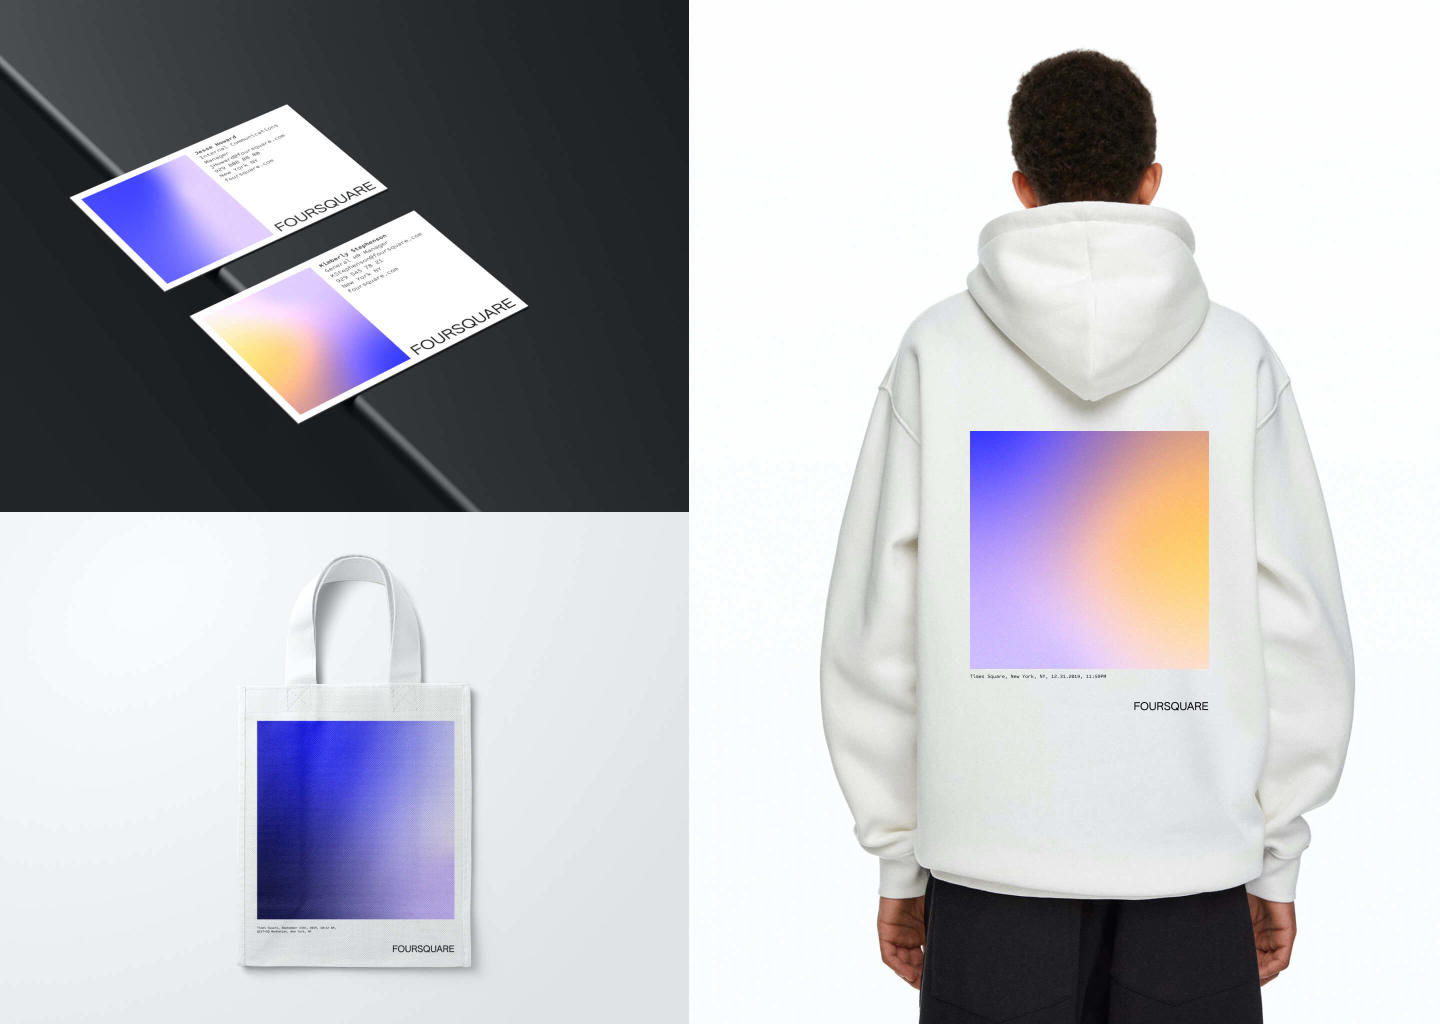 New branding gradient and swag